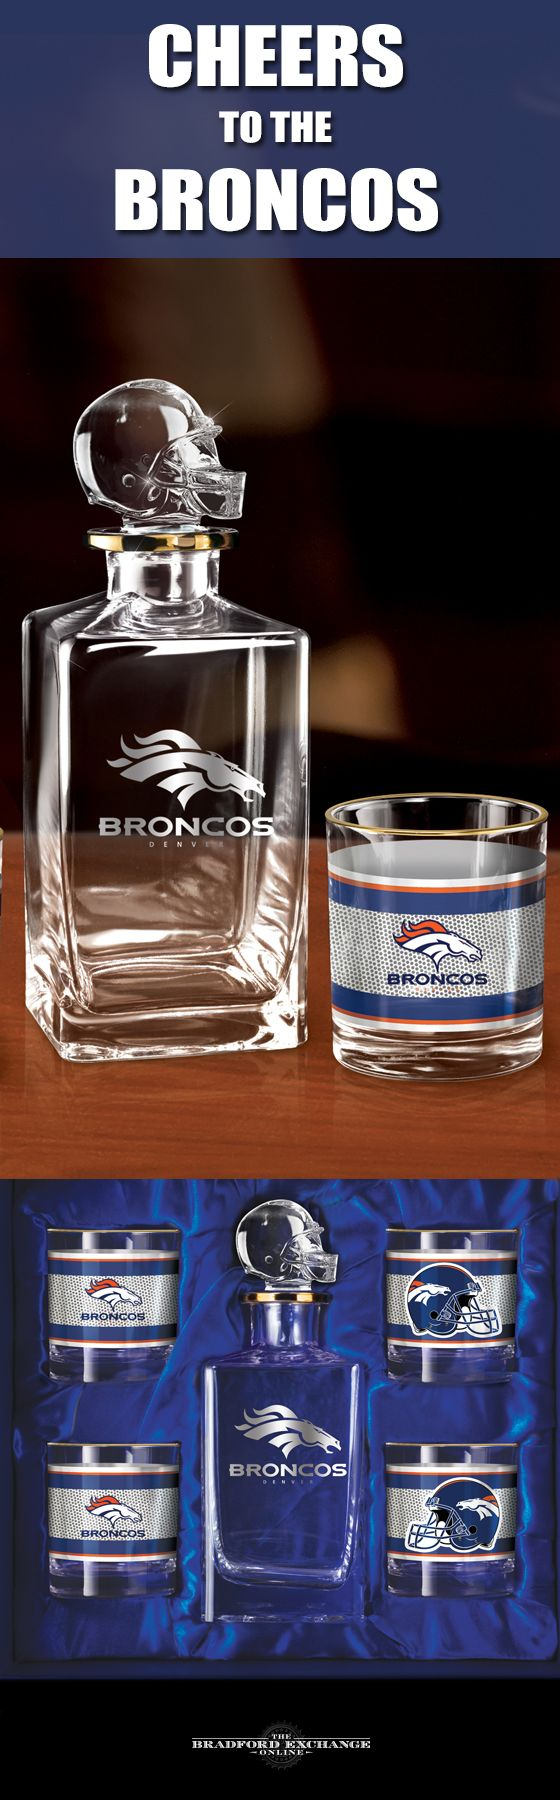 Raise a toast to your Denver Broncos with a handsome 5-piece decanter set. This officially-licensed NFL barware set includes a crystal-clear decanter with a team helmet stopper, 4 team icon glasses rimmed in gleaming 12K gold and a satin-lined gift box